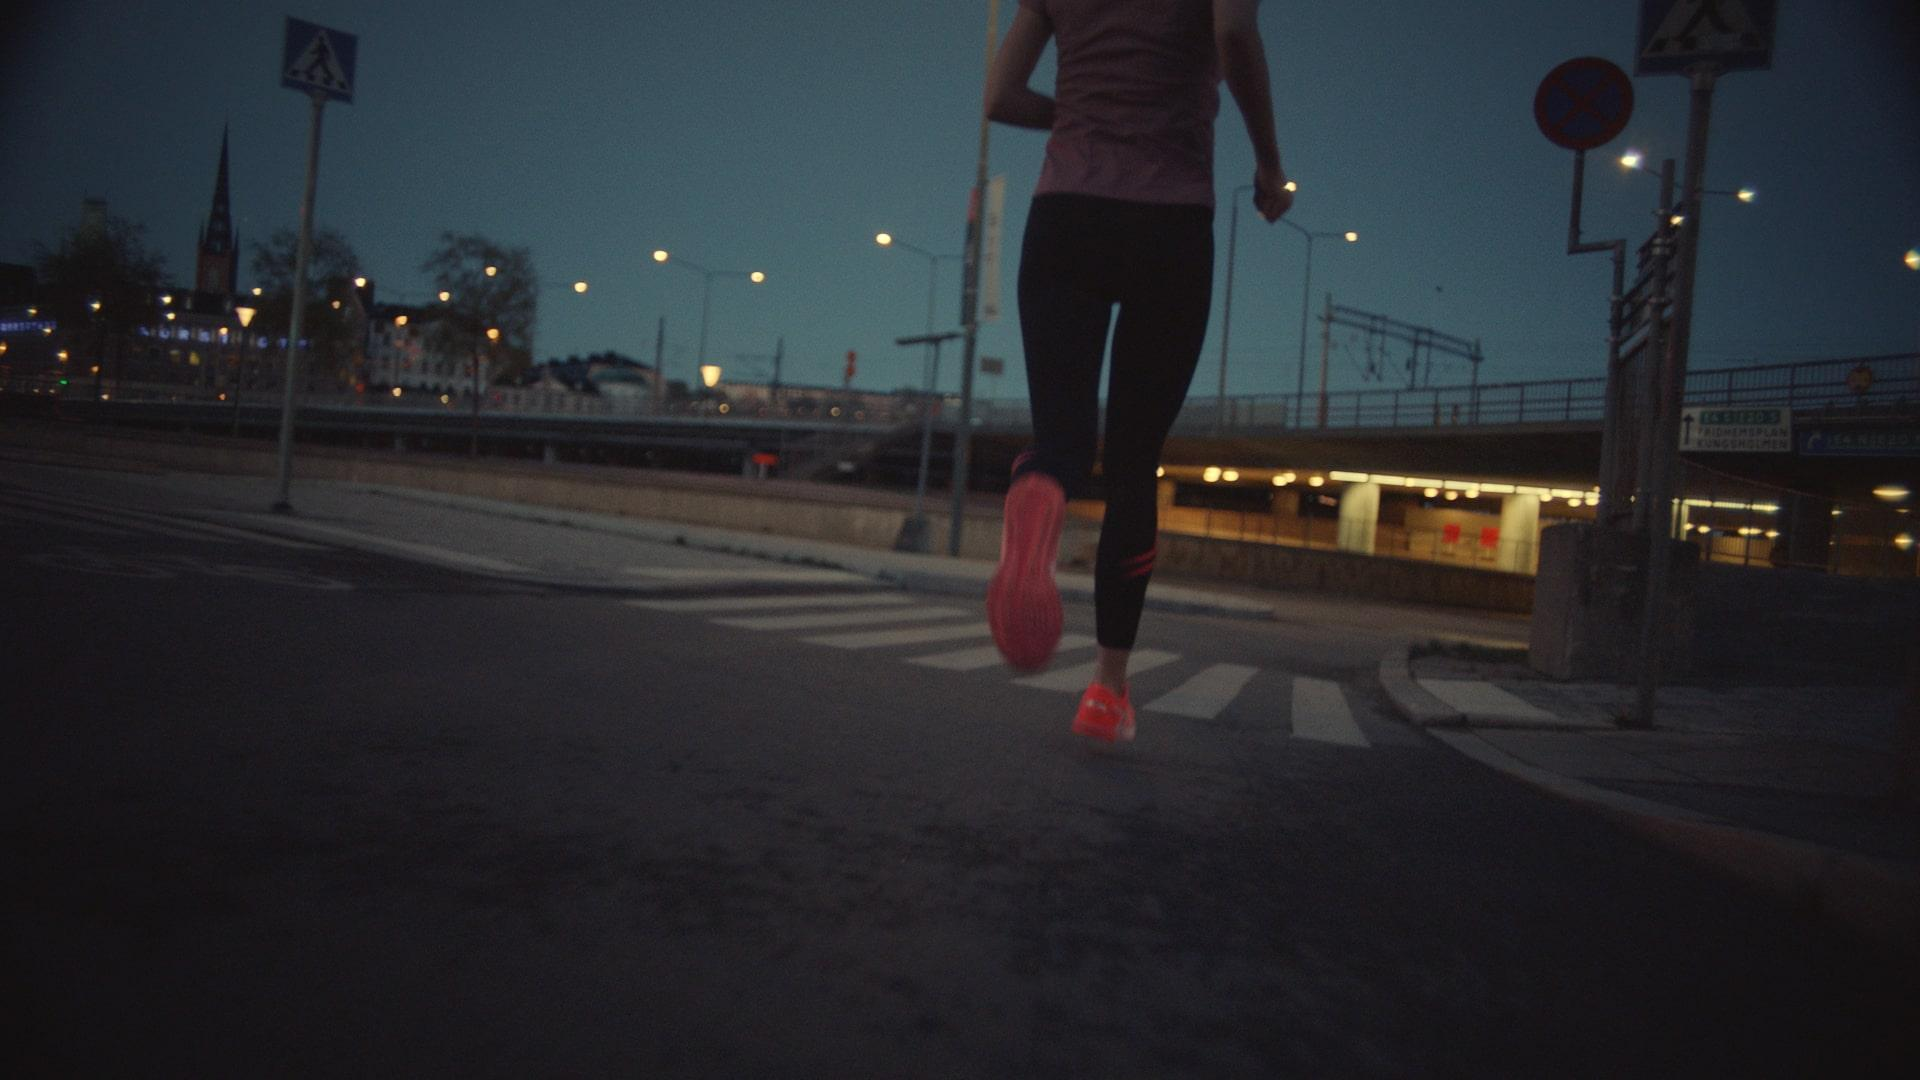 ASICS launches #RunToFeel challenge